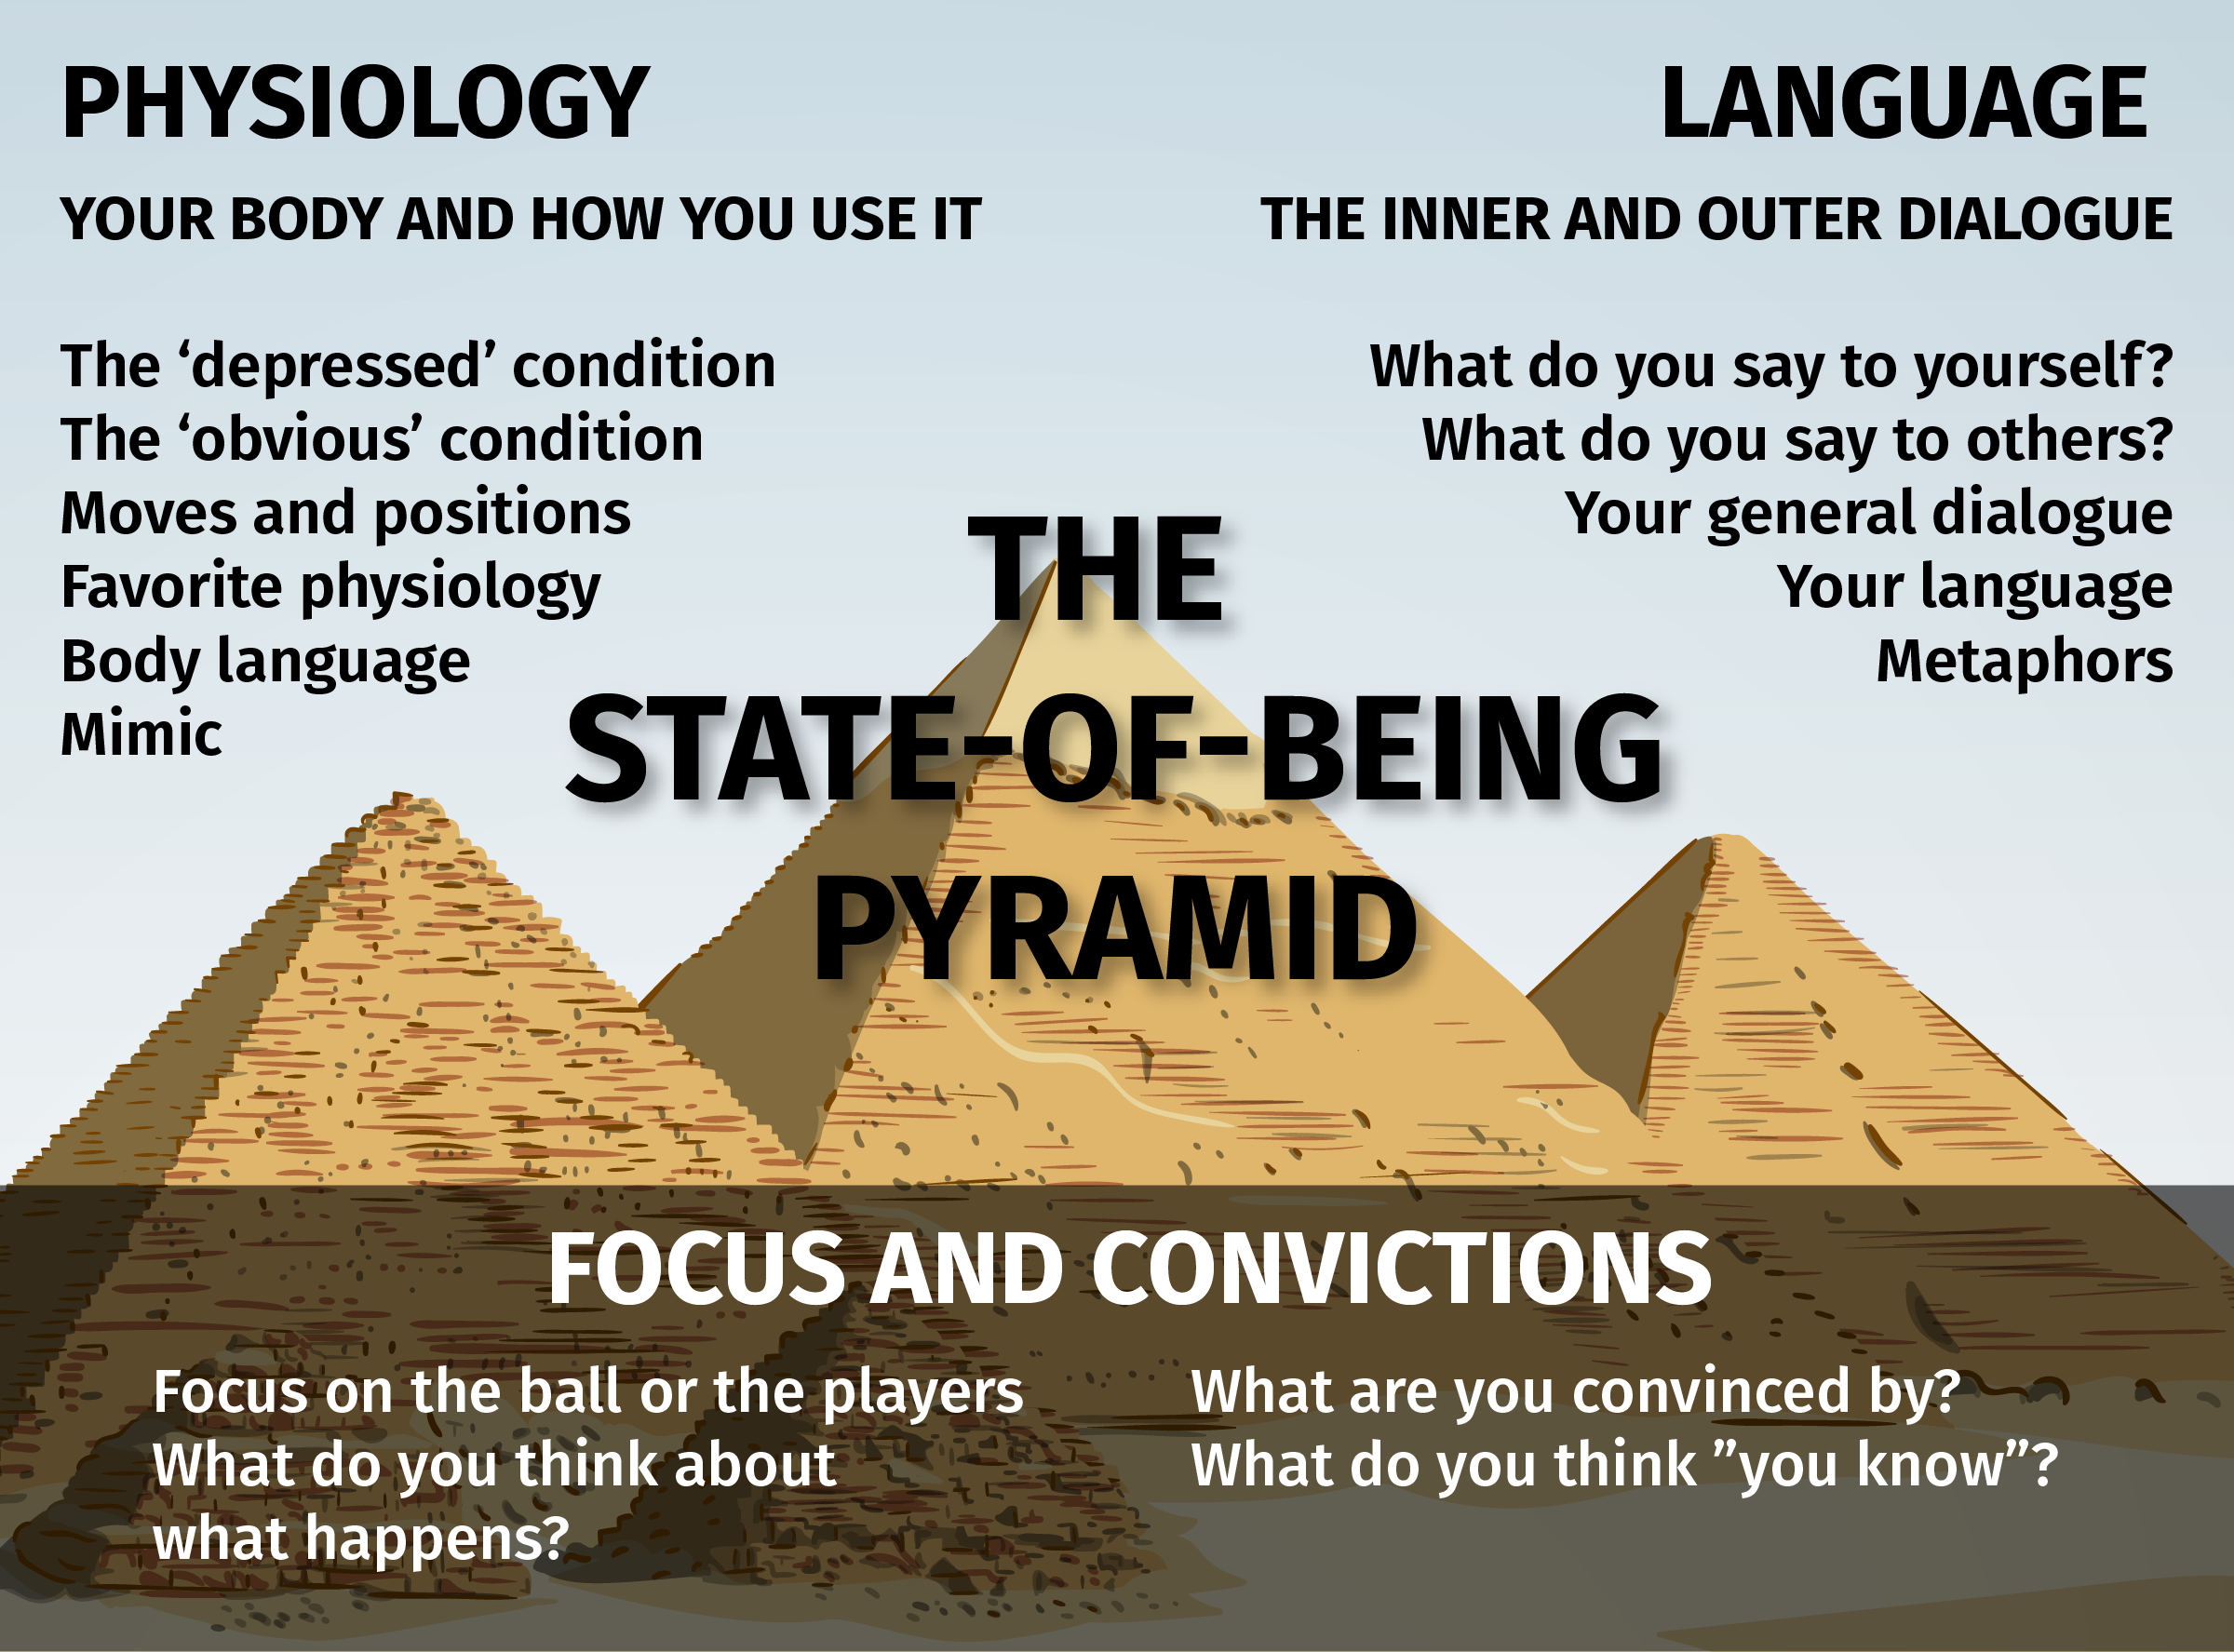 THE STATE-OF-BEING PYRAMID